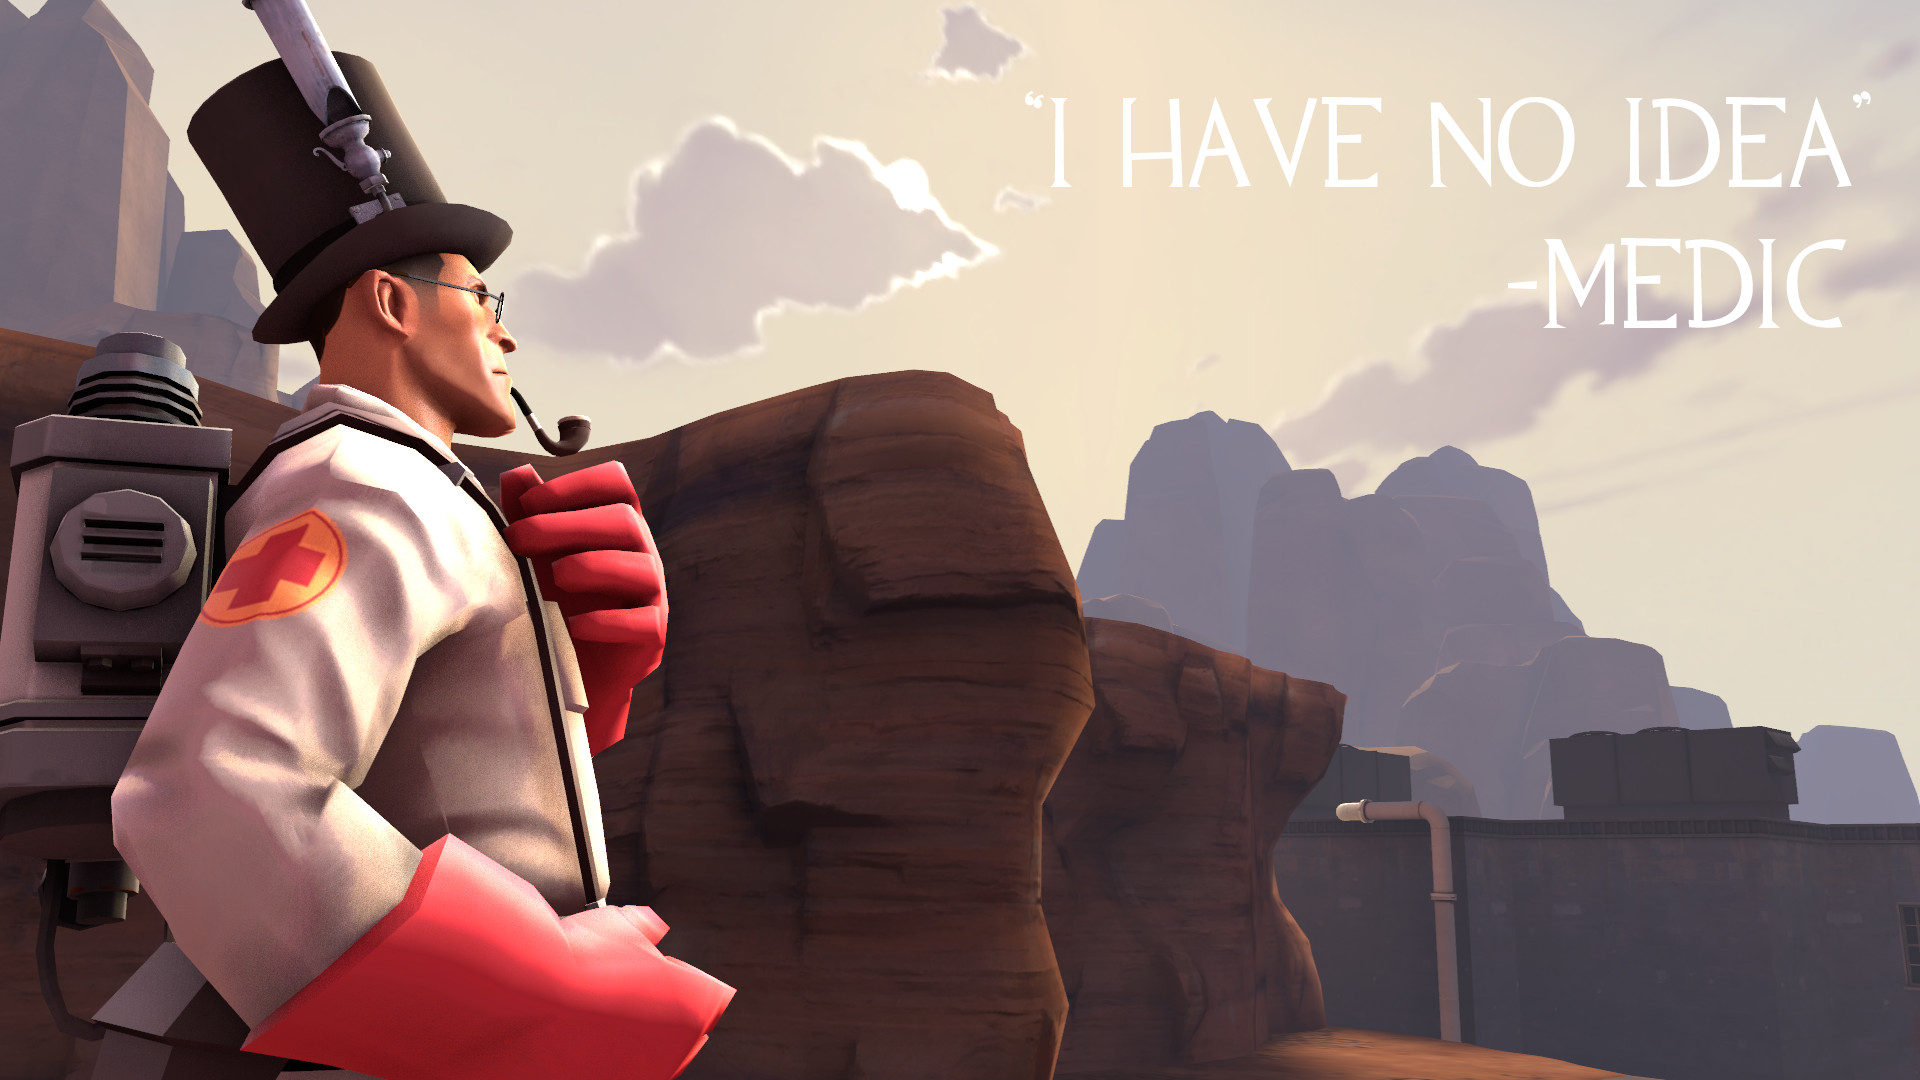 1920x1080 Team Fortress 2(TF2) images TF2 Medic quotes HD wallpaper and background  photos